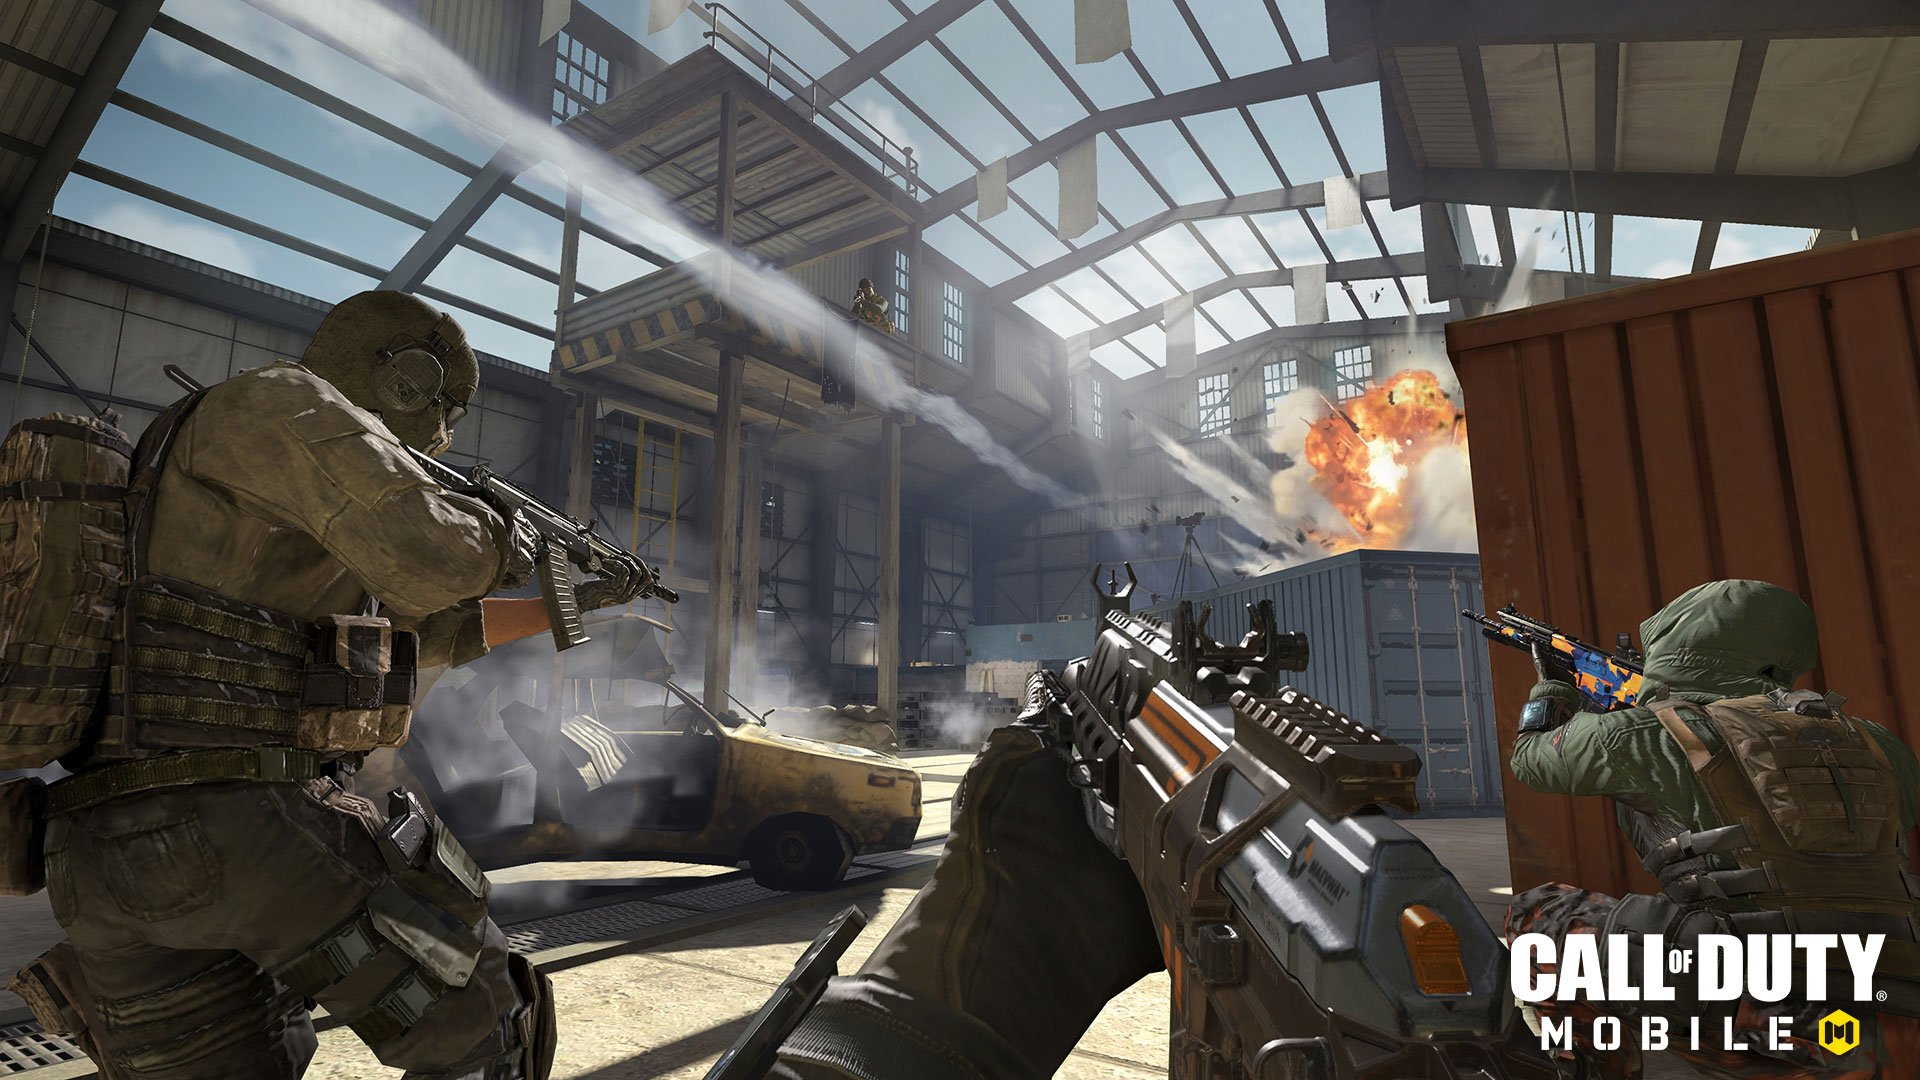 Analyst Believes Call Of Duty Mobile Excitement May Drive Higher